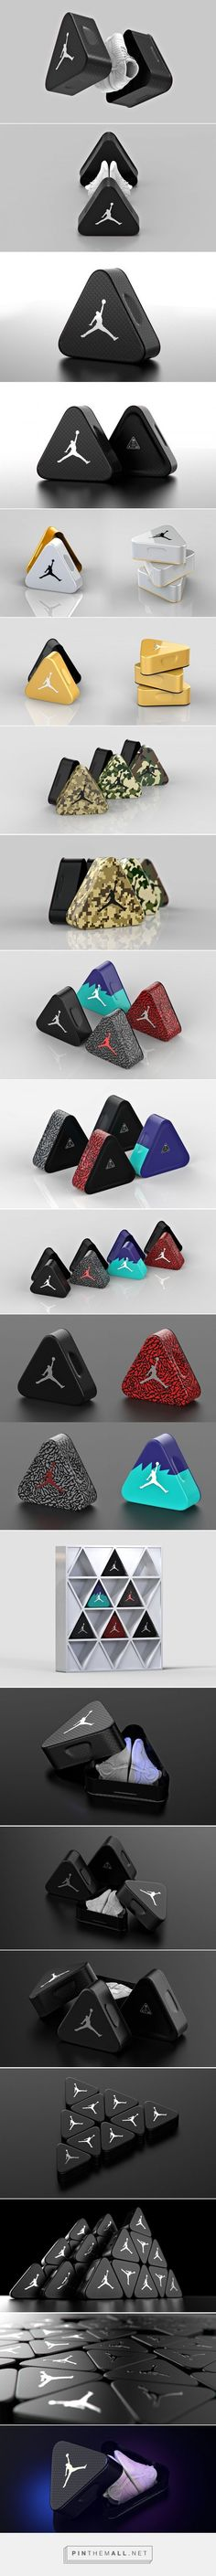 Air Jordan Triangle Shoe box concept packaging by Tomislav Zvonaric - | Milan Fashion Weeks, New York Fashion, Teen Fashion, Fashion Tips, Fashion Spring, Fashion Articles, Fashion Videos, Korean Fashion, Runway Fashion